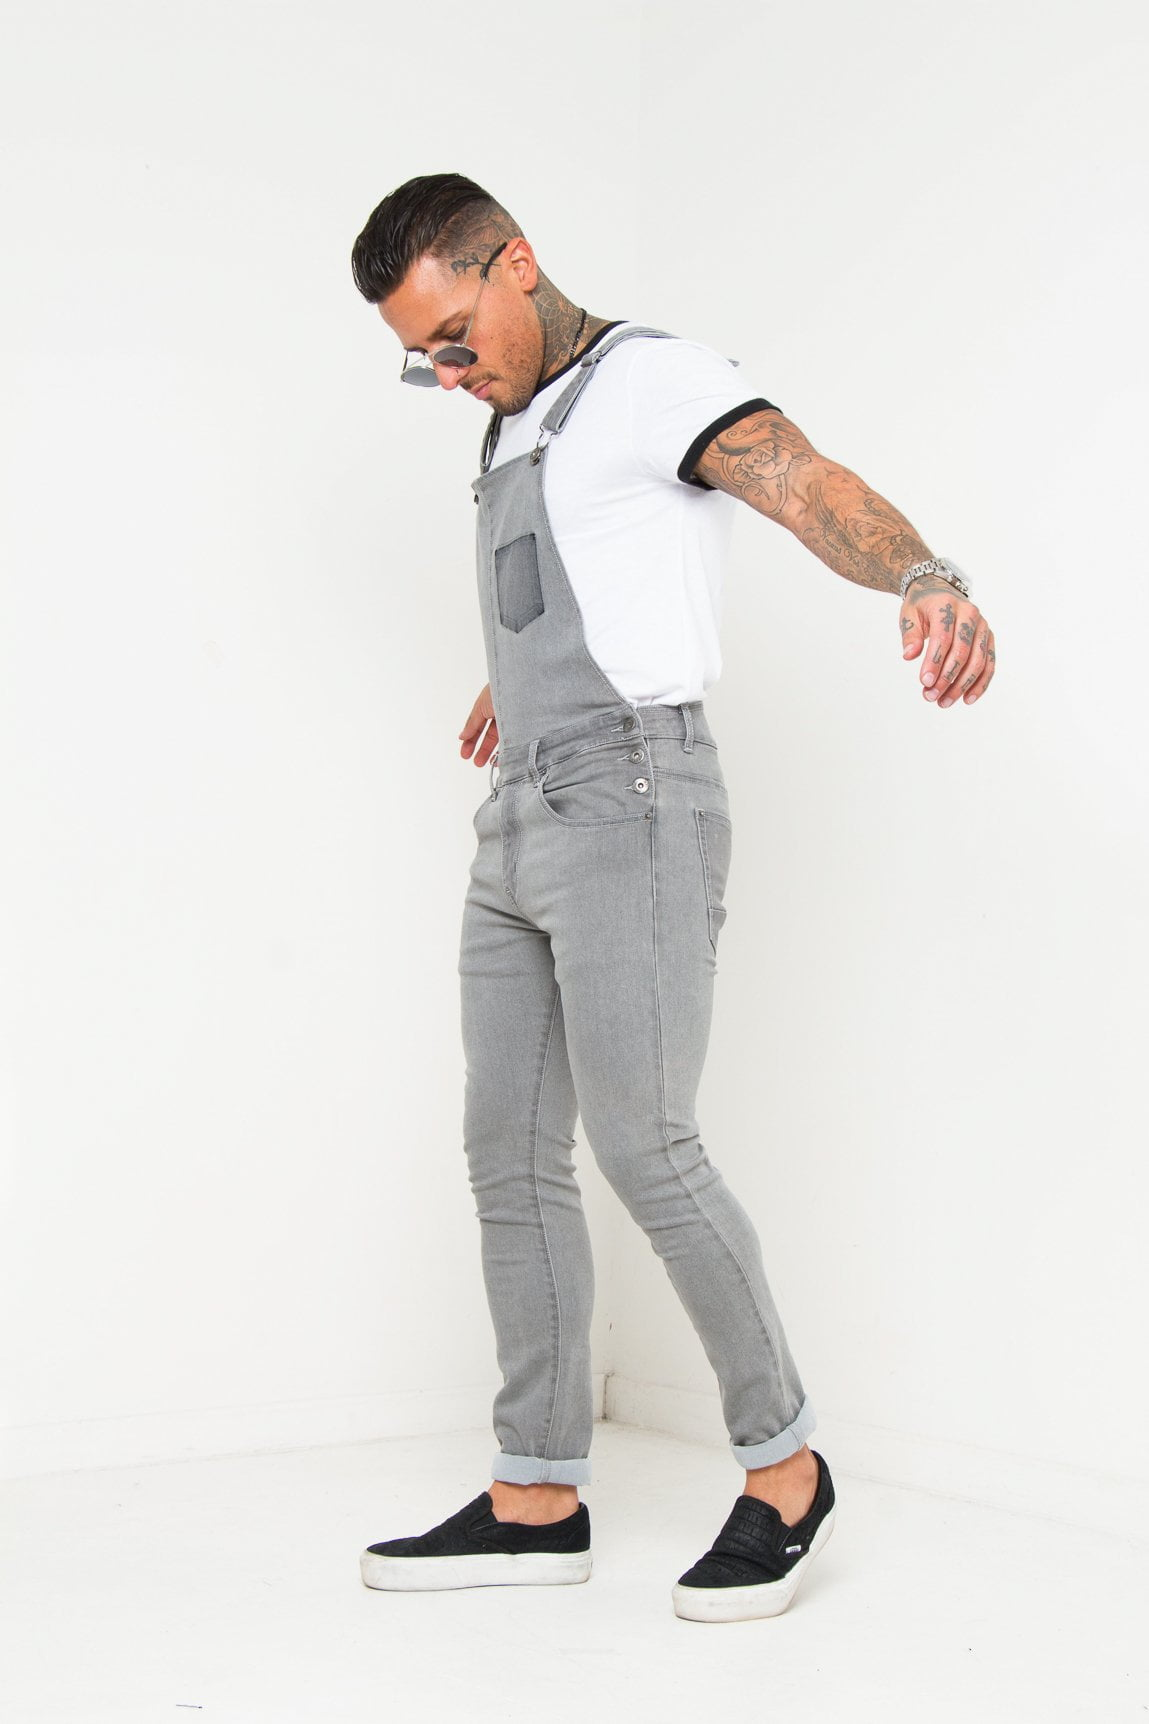 LOUISIANA SKINNY FIT DUNGAREE IN WASHED GREY - Liquor N Poker  Liquor N Poker